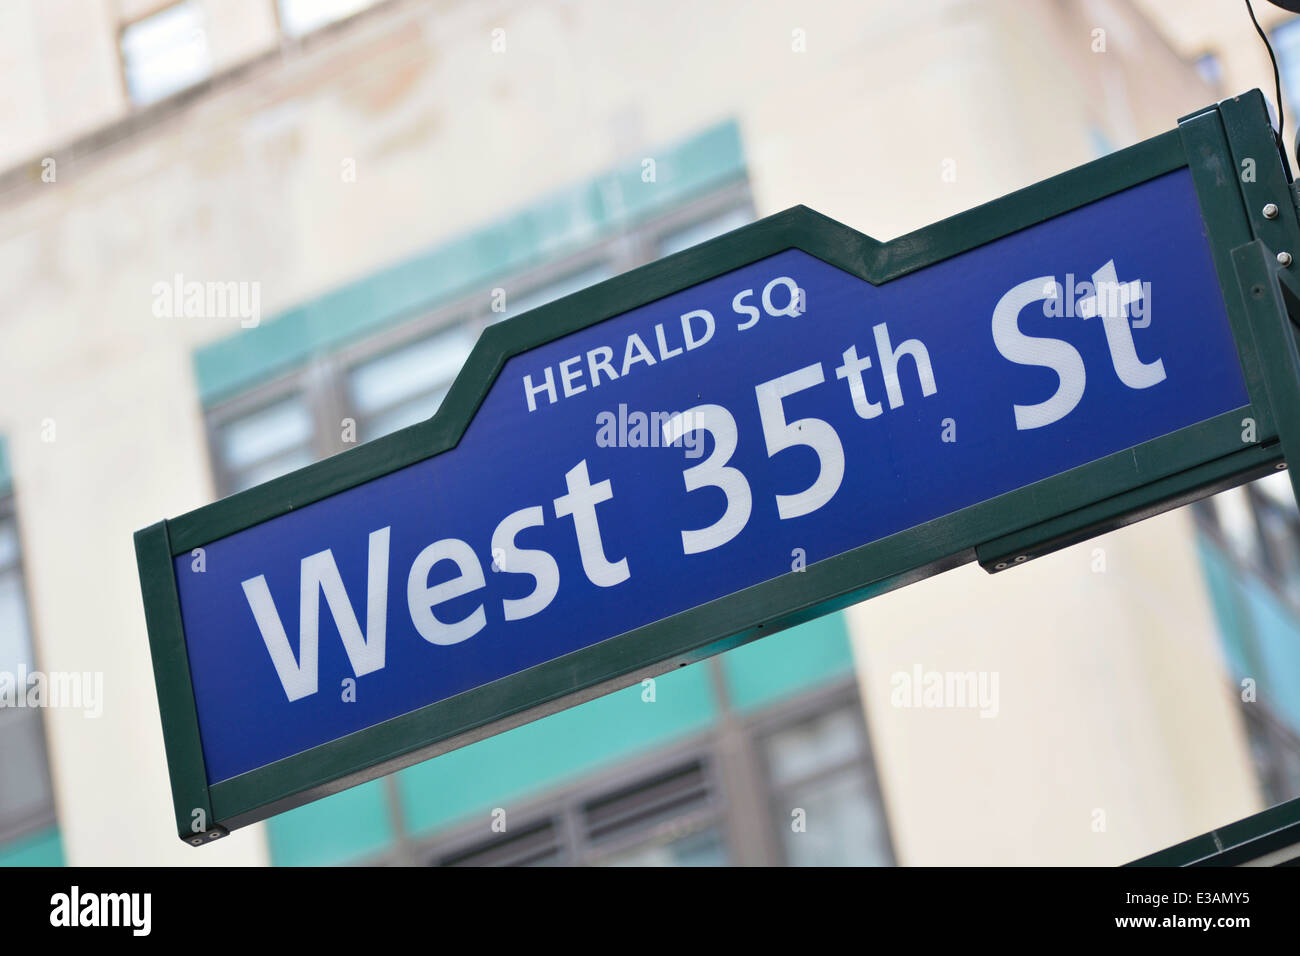 Herald Square New York, Street Sign of West 35th St - Stock Image